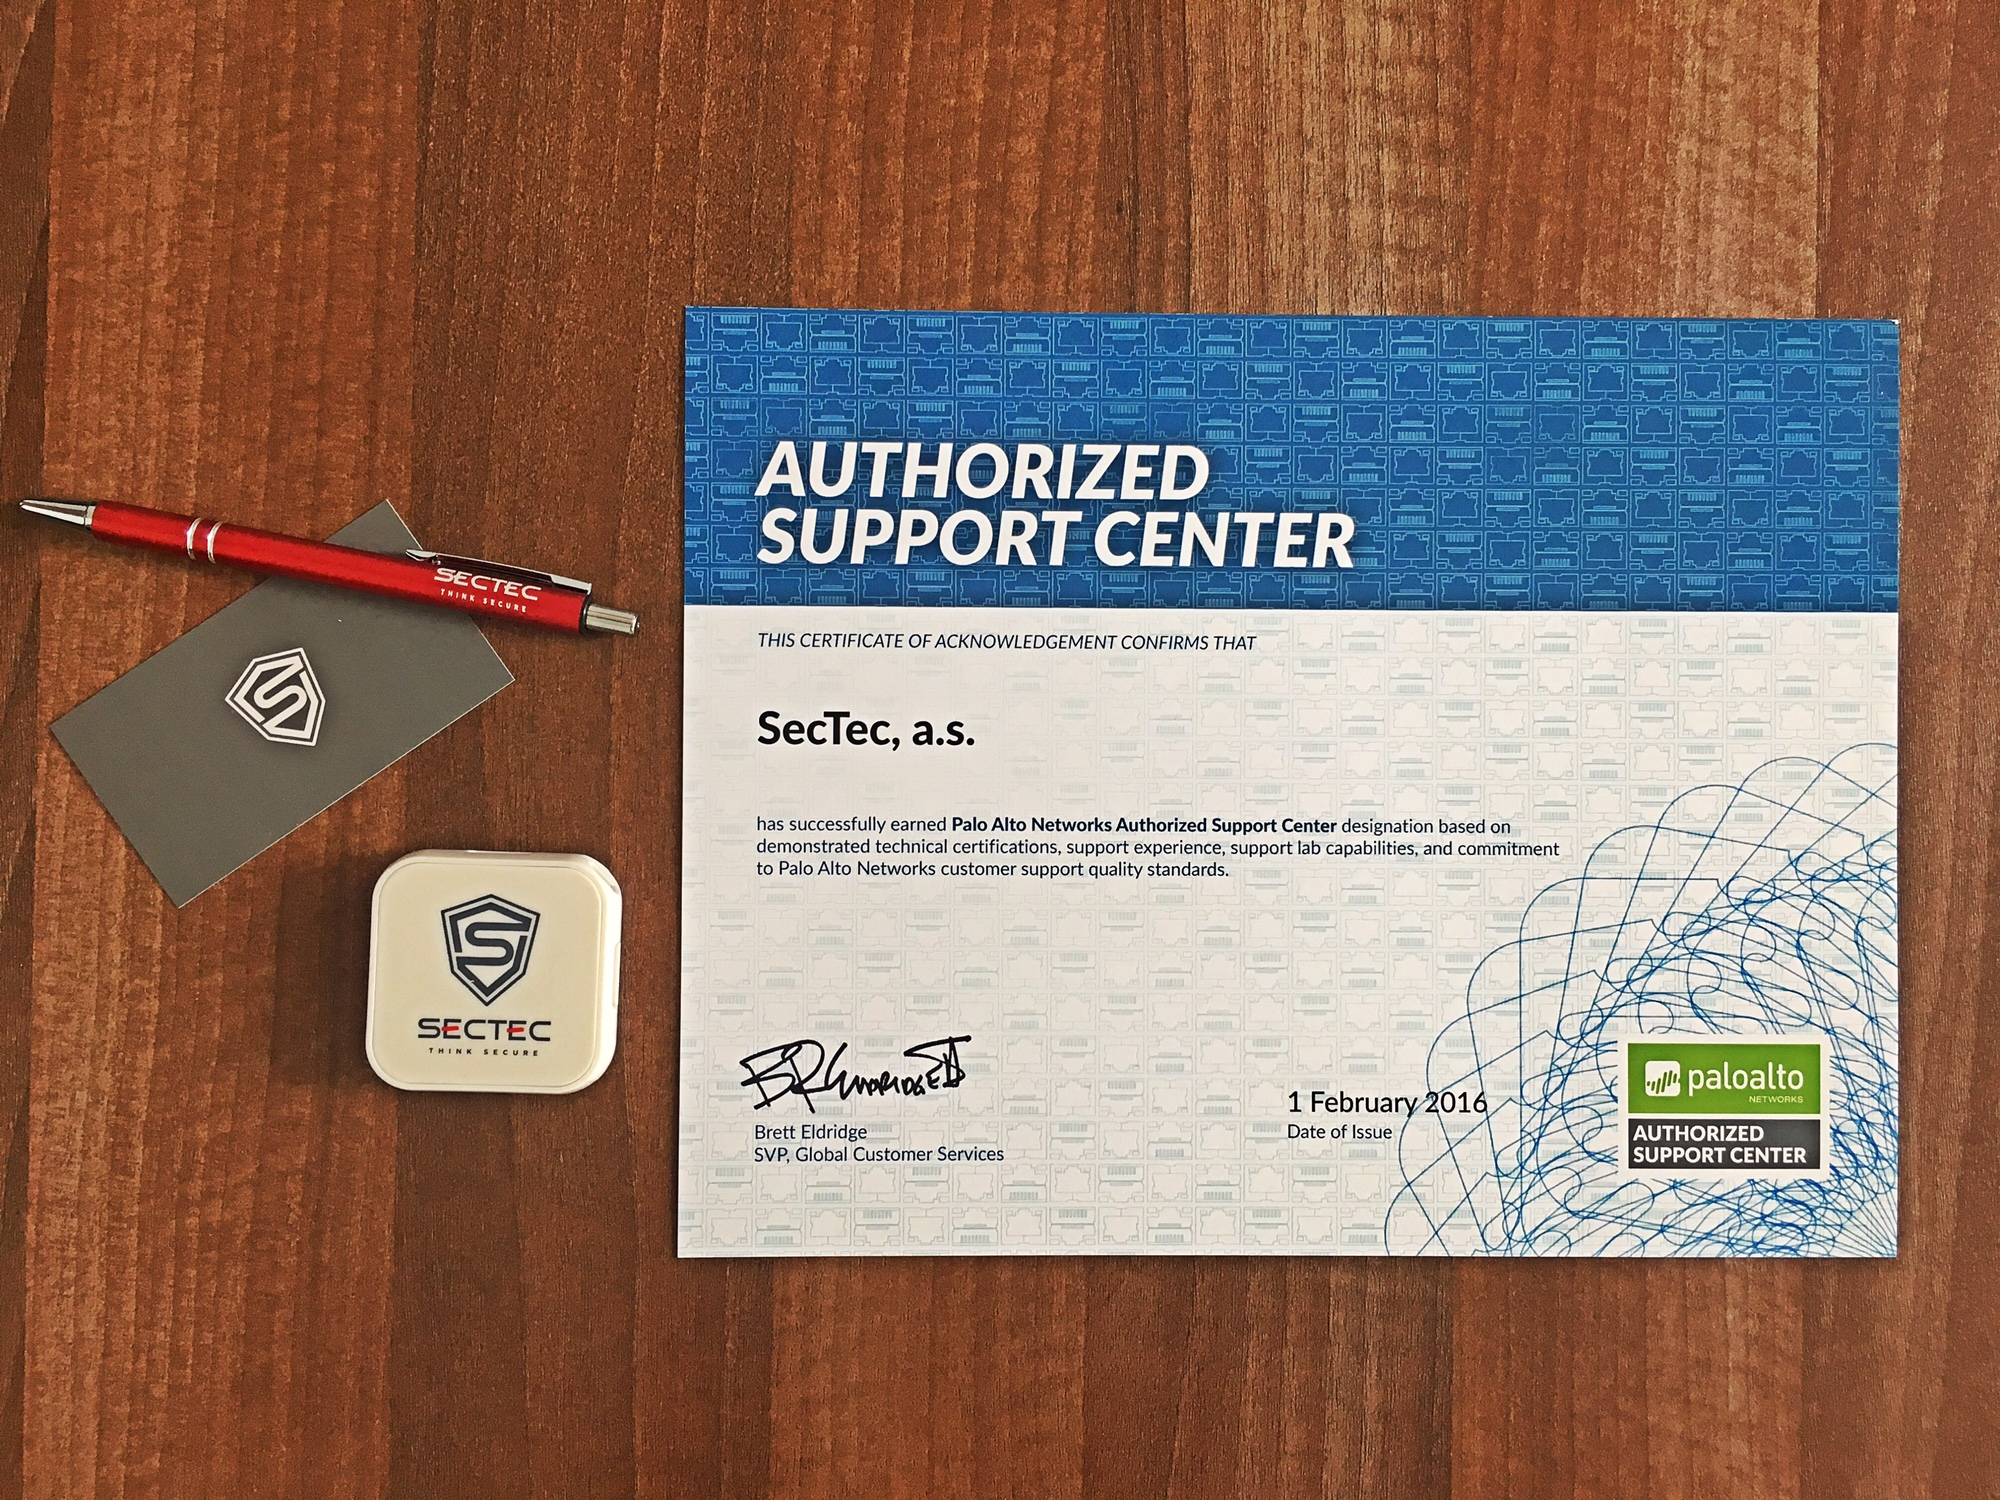 SecTec - Palo Alto Networks Authorized Support Center